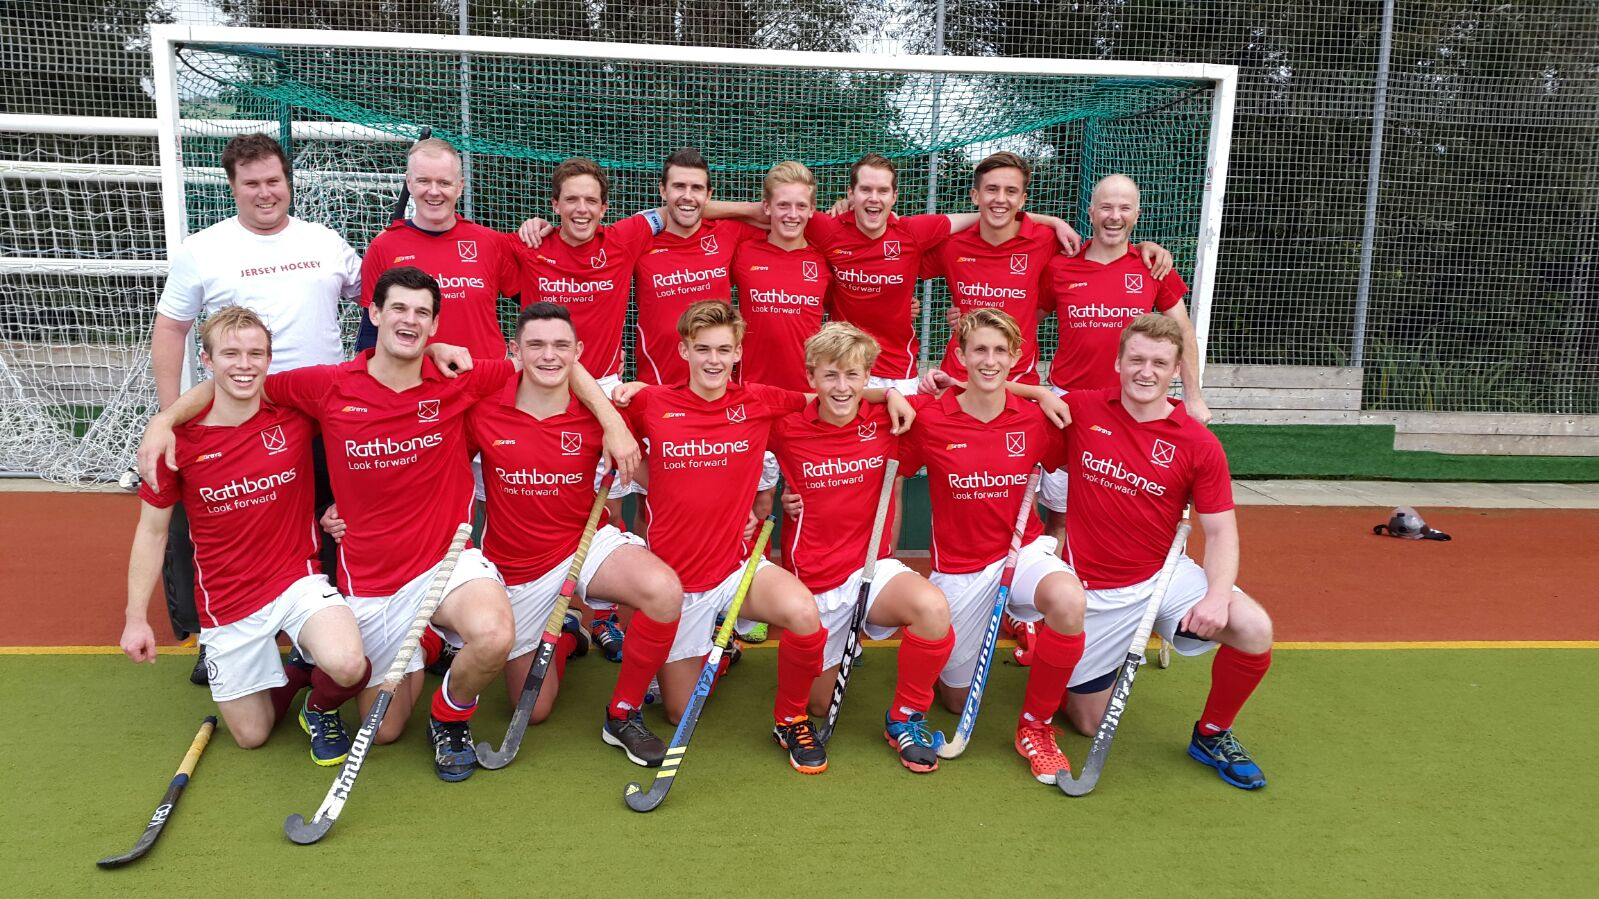 England Hockey Men's Trophy Round One  Jersey win 4 - 1 on penalty strokes